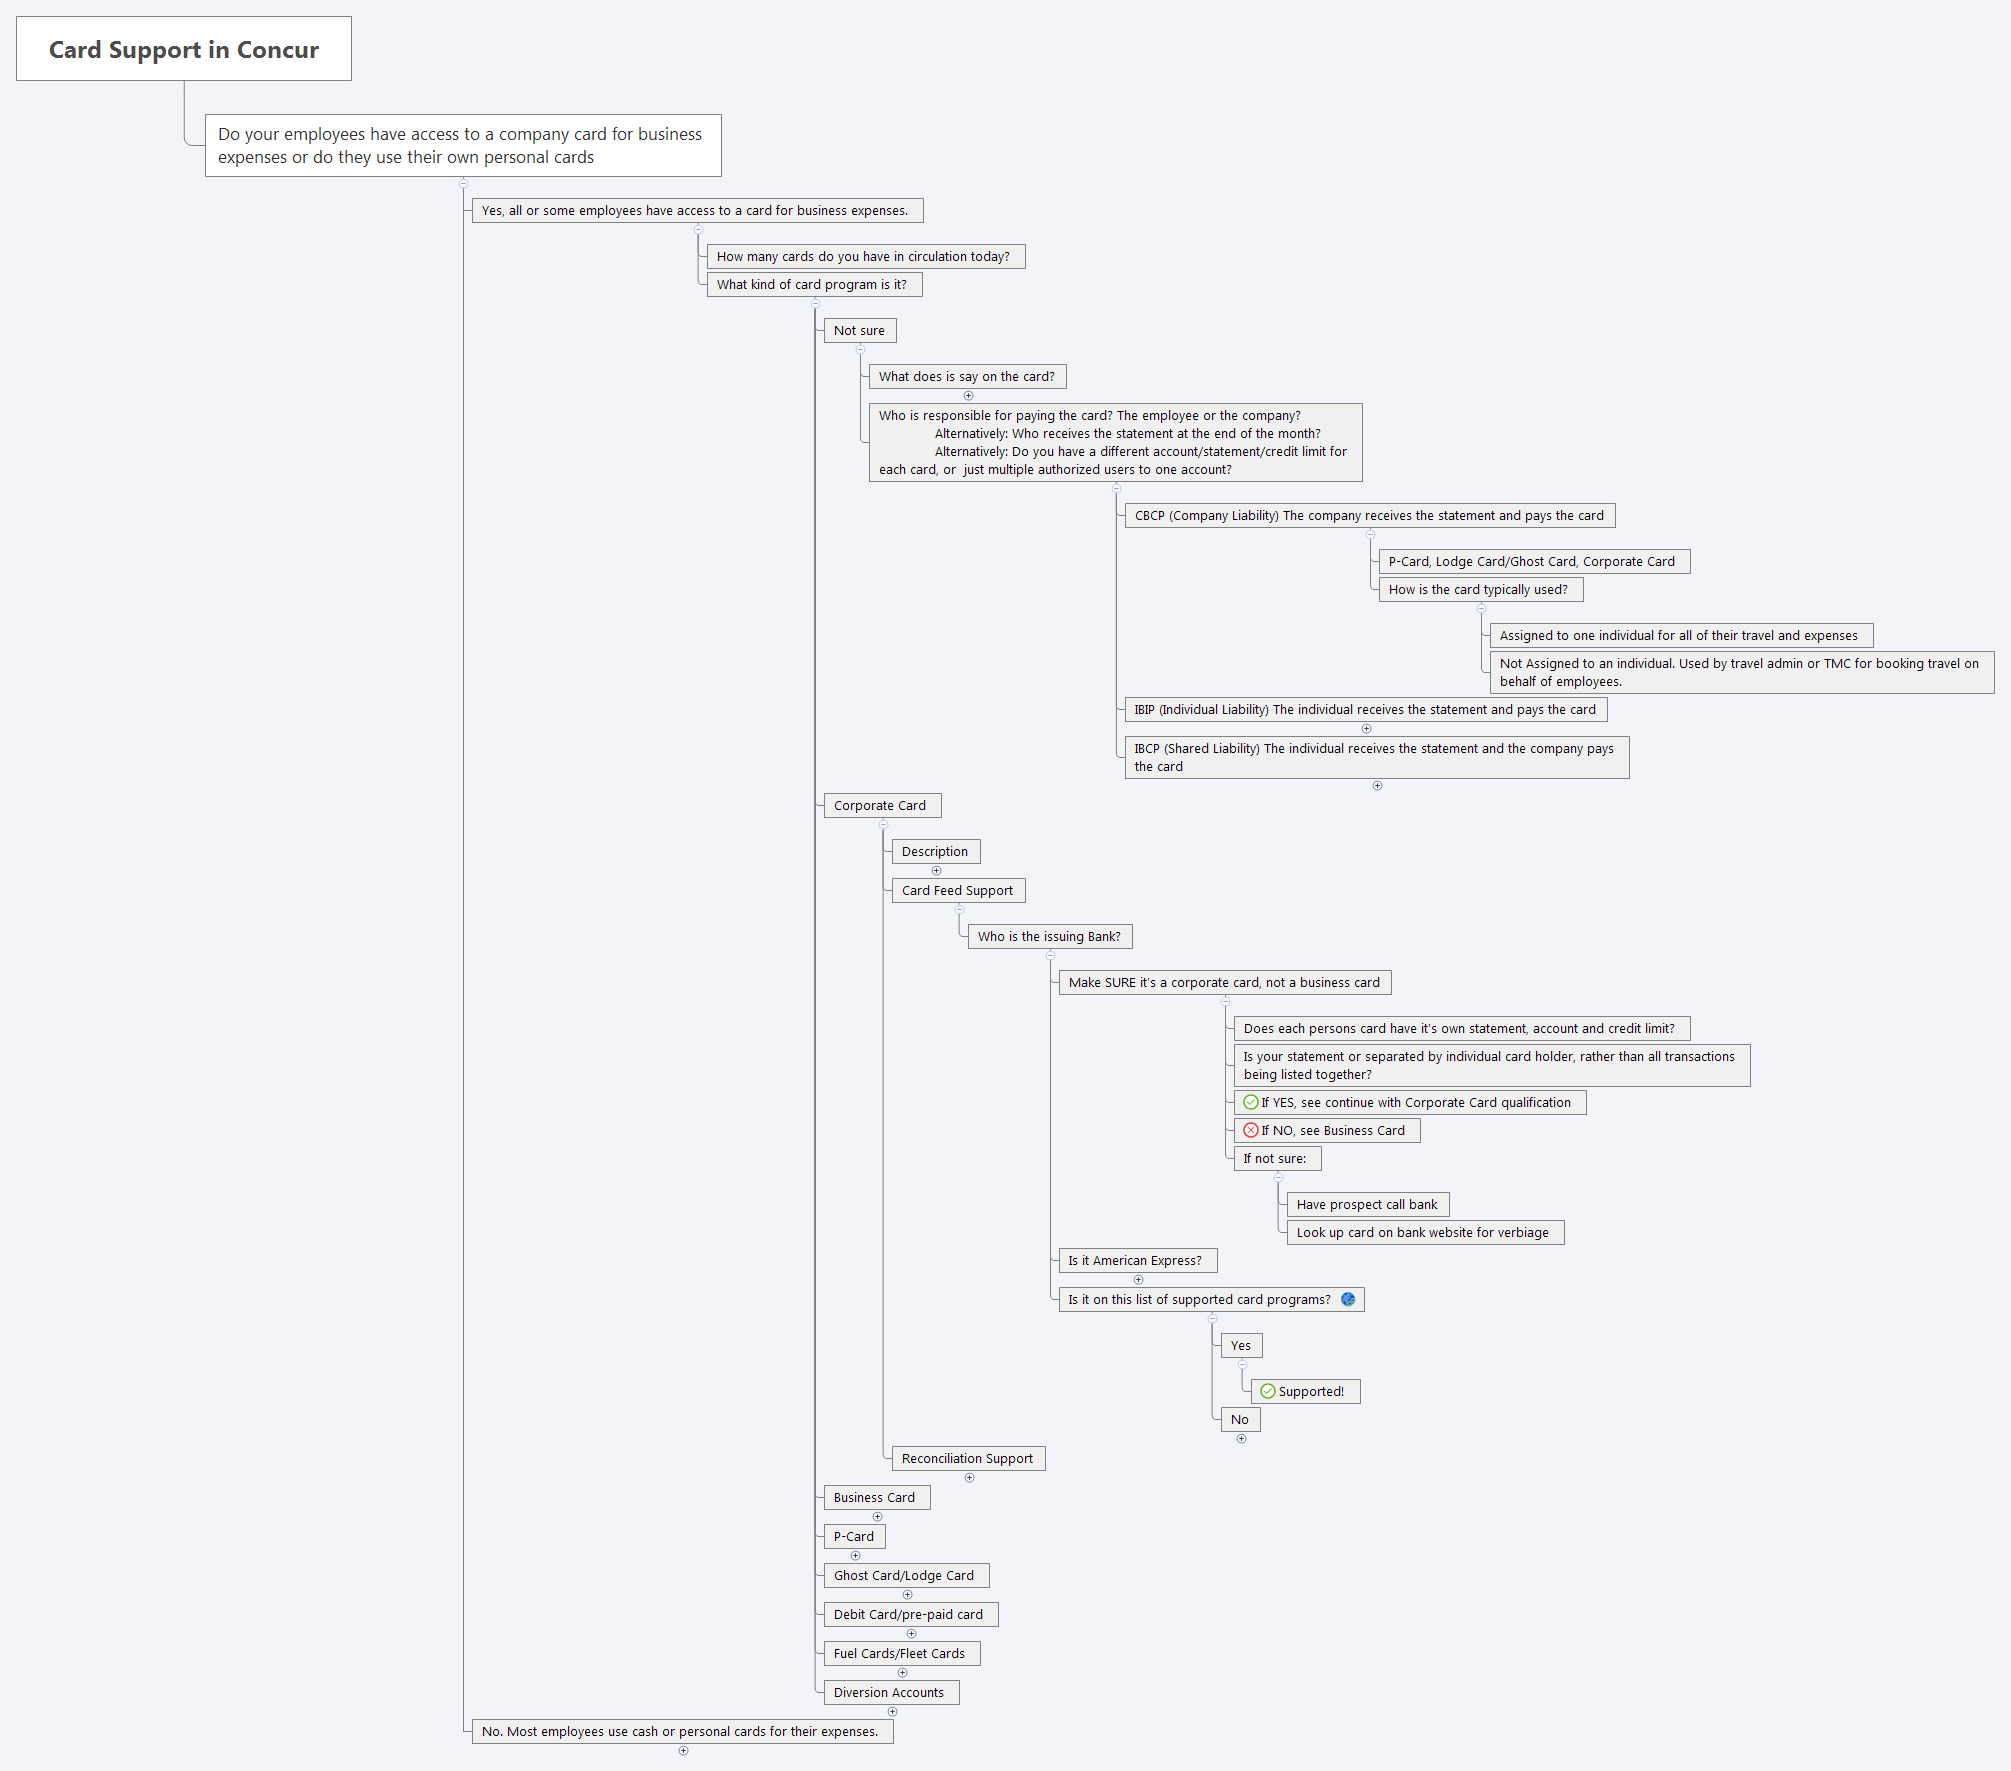 Card Support in Concur - XMind - Mind Mapping Software